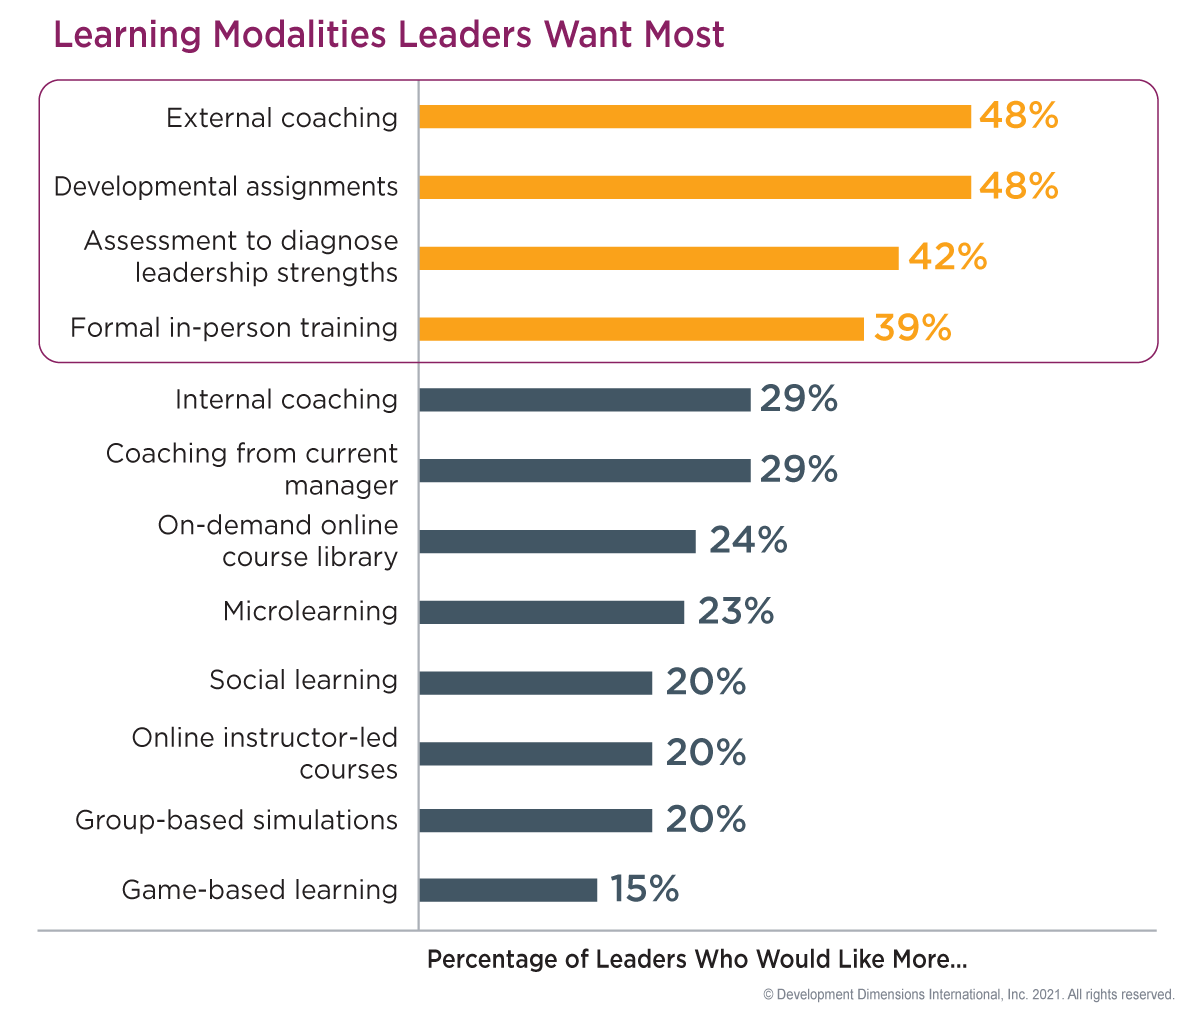 bar graph of the learning modalities leaders want most: coaching from external coaches, internal coaching, and coaching from current manager make up three of the top six